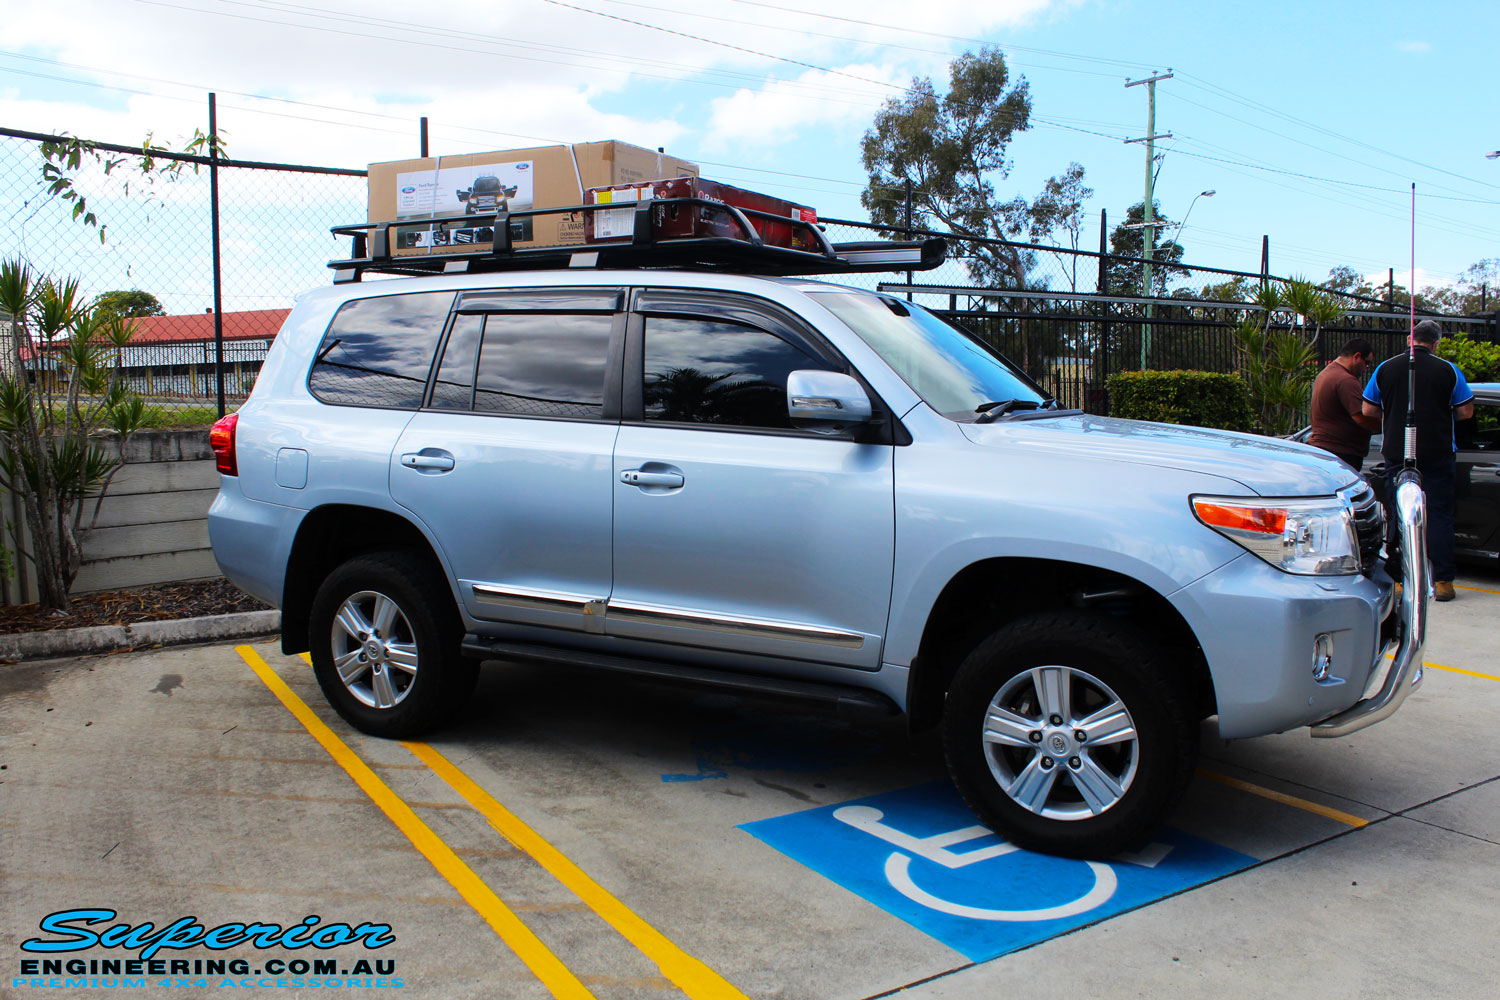 Toyota 200 Series Landcruiser Wagon Blue 4x4 Airbags Land Cruiser Lift Kit Right Side View Of A After Fitment Superior Remote